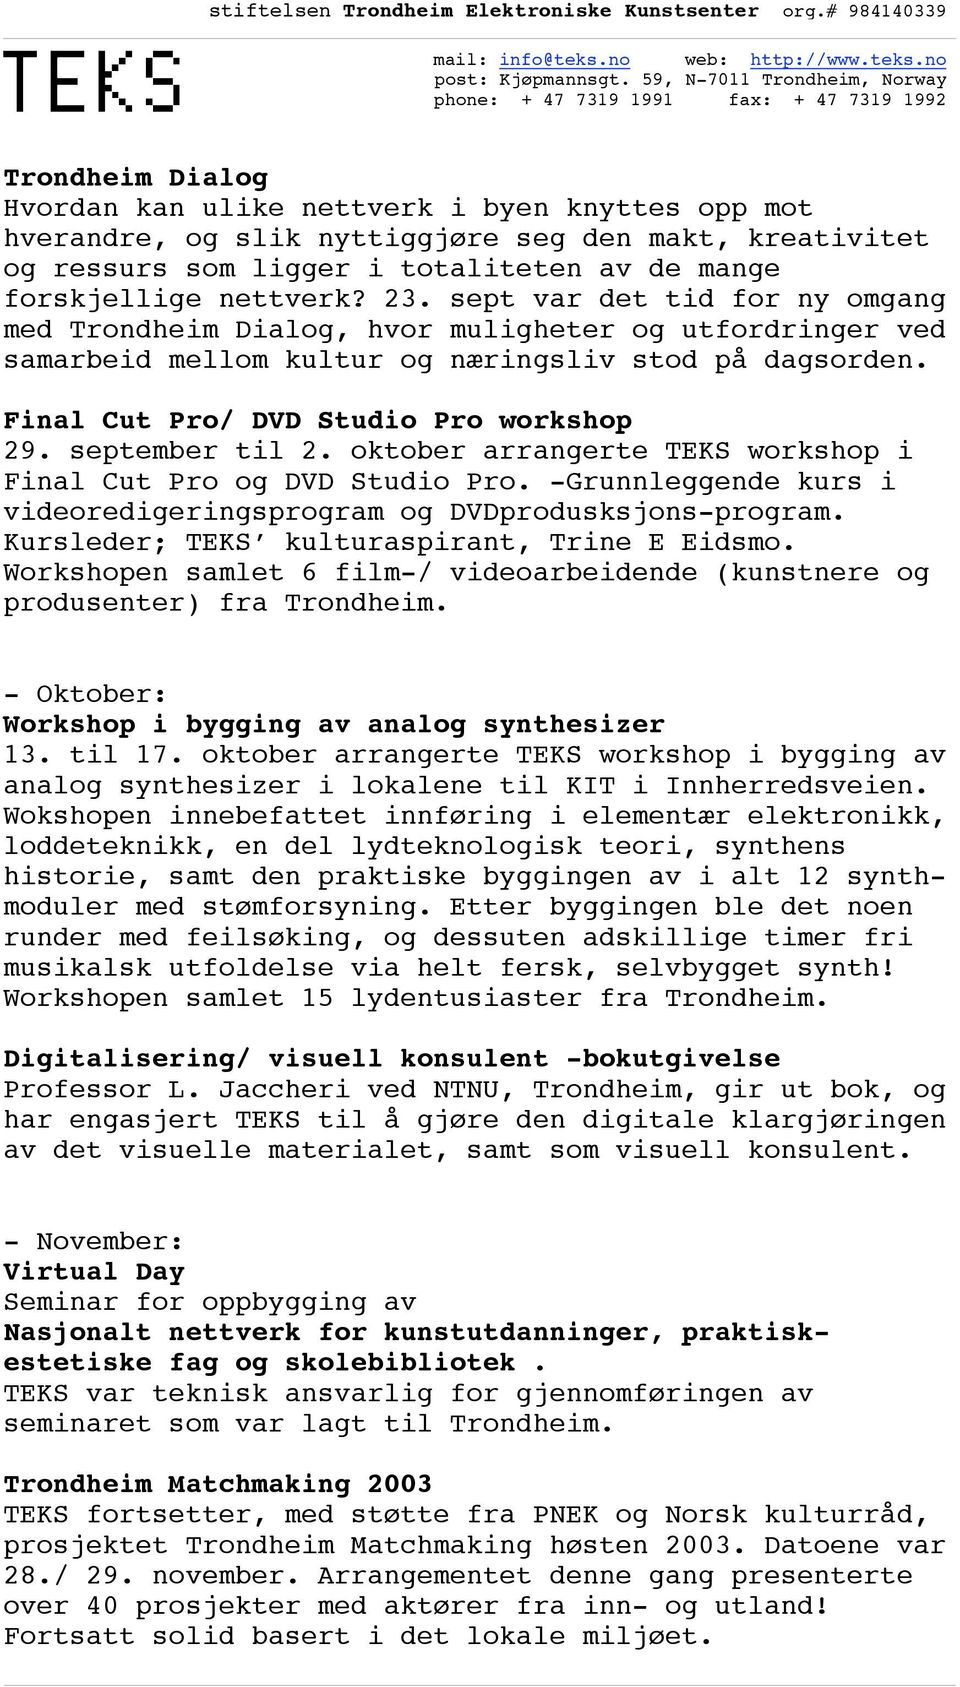 september til 2. oktober arrangerte TEKS workshop i Final Cut Pro og DVD Studio Pro. -Grunnleggende kurs i videoredigeringsprogram og DVDprodusksjons-program.